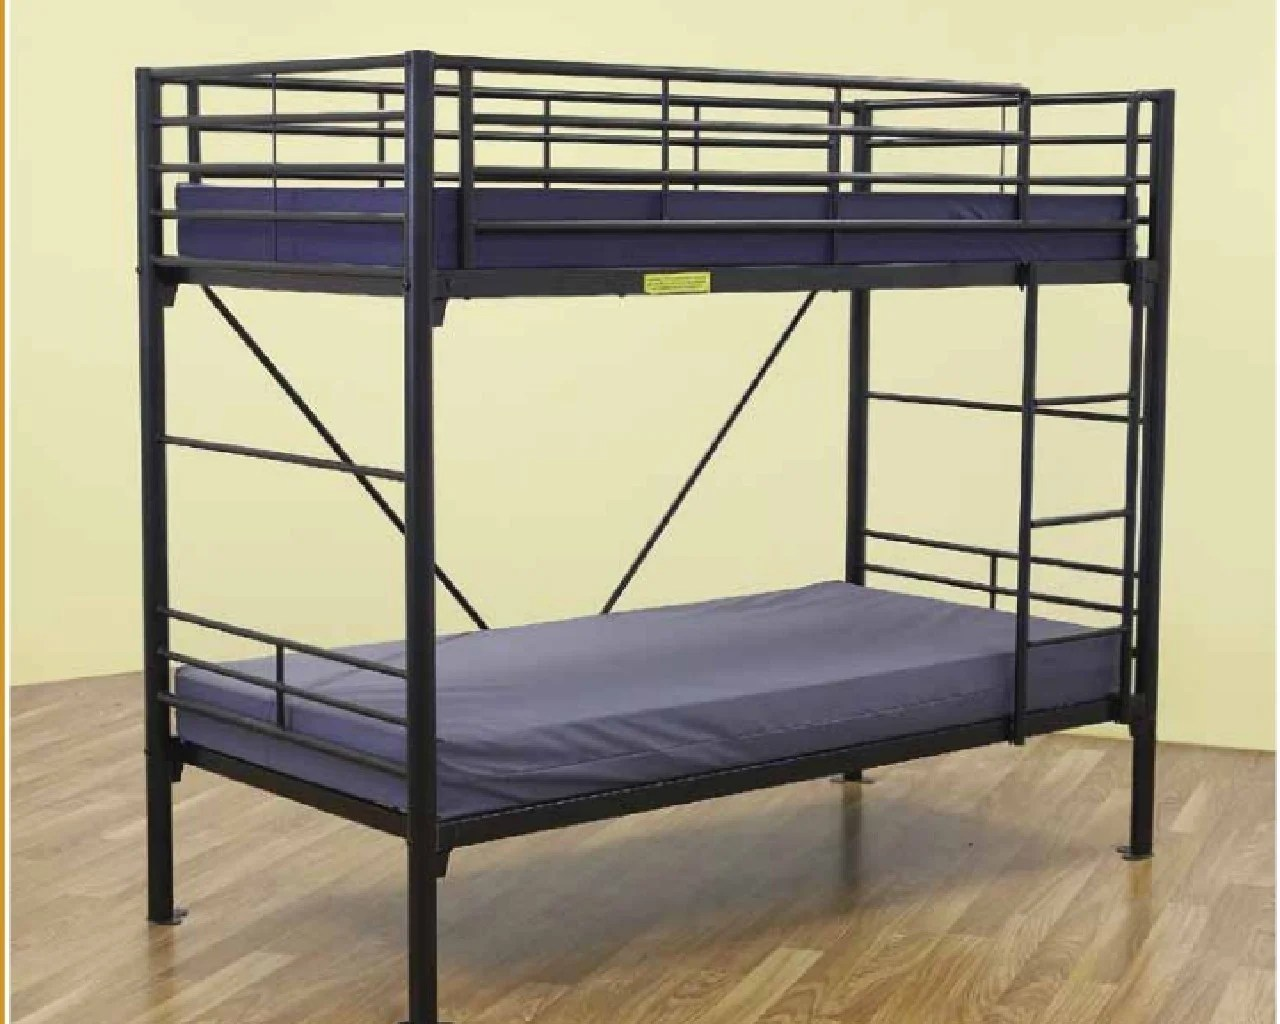 Commercial Bunk Bed